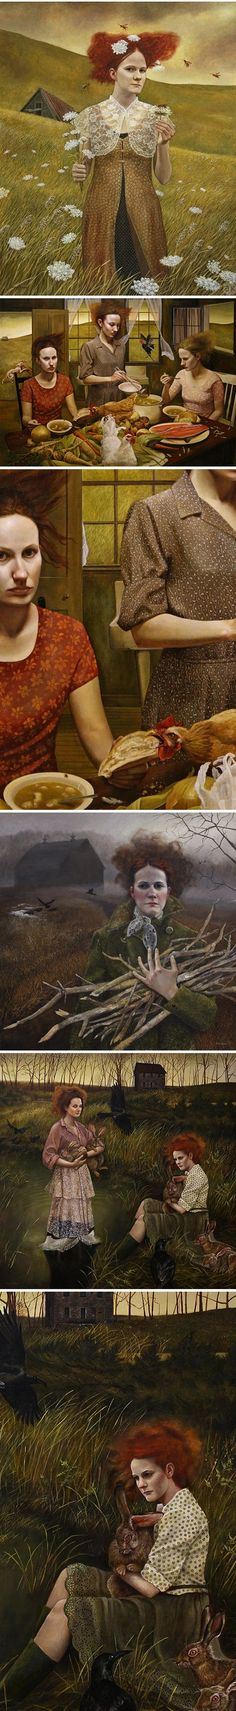 Art by Andrea Kowch. There is so much going on in these. Chilling really.